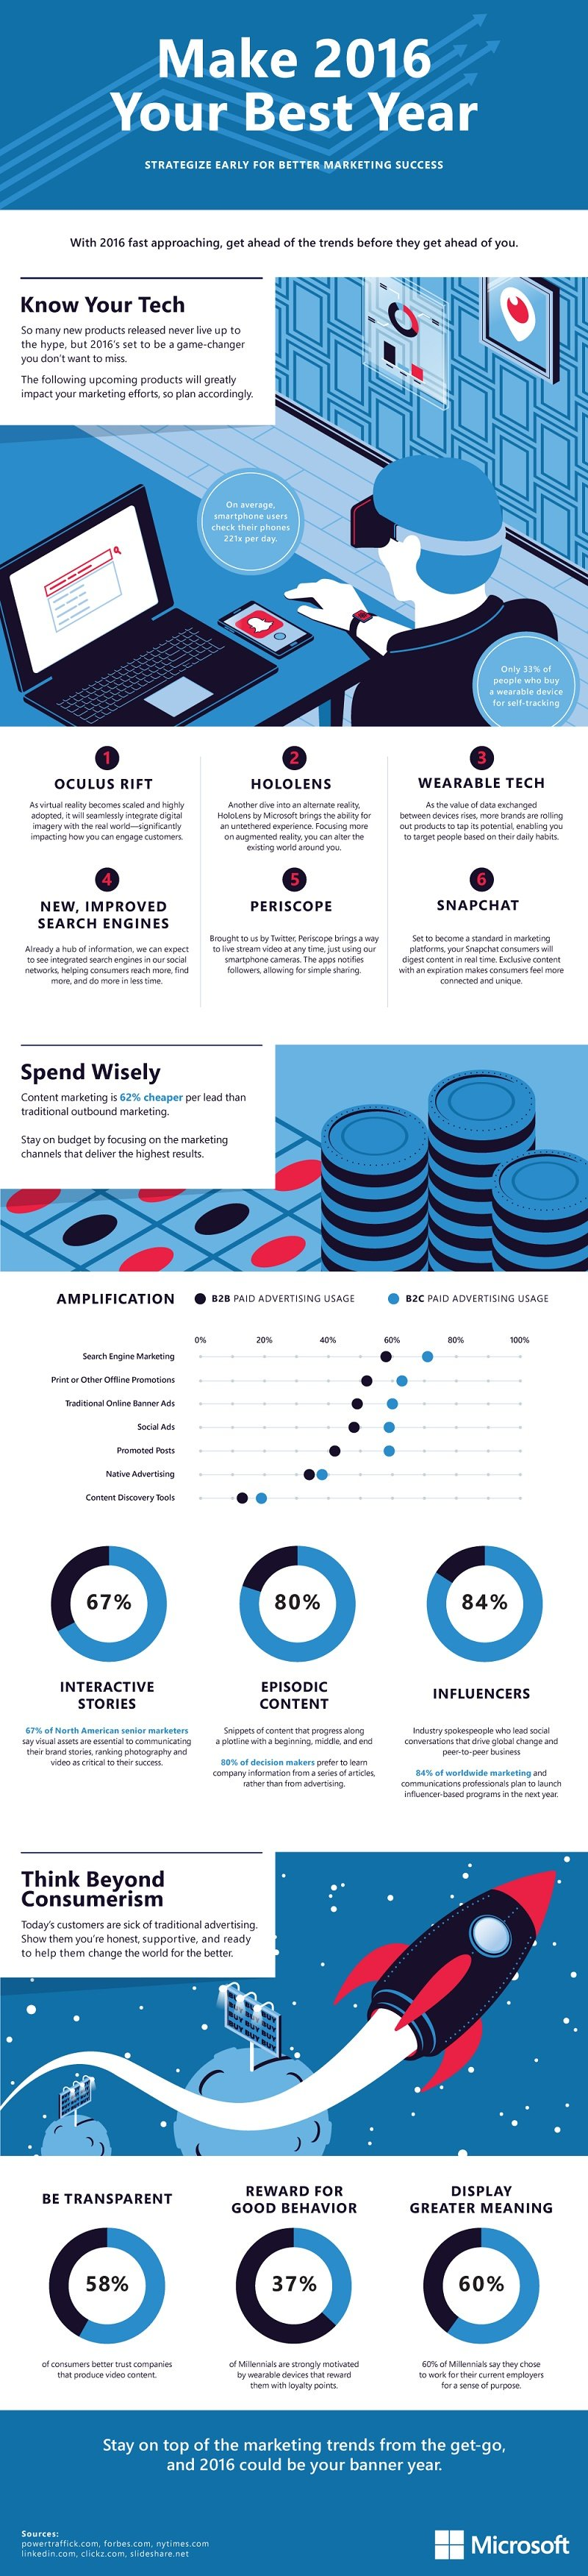 151215-2016-marketing-trends-infographic